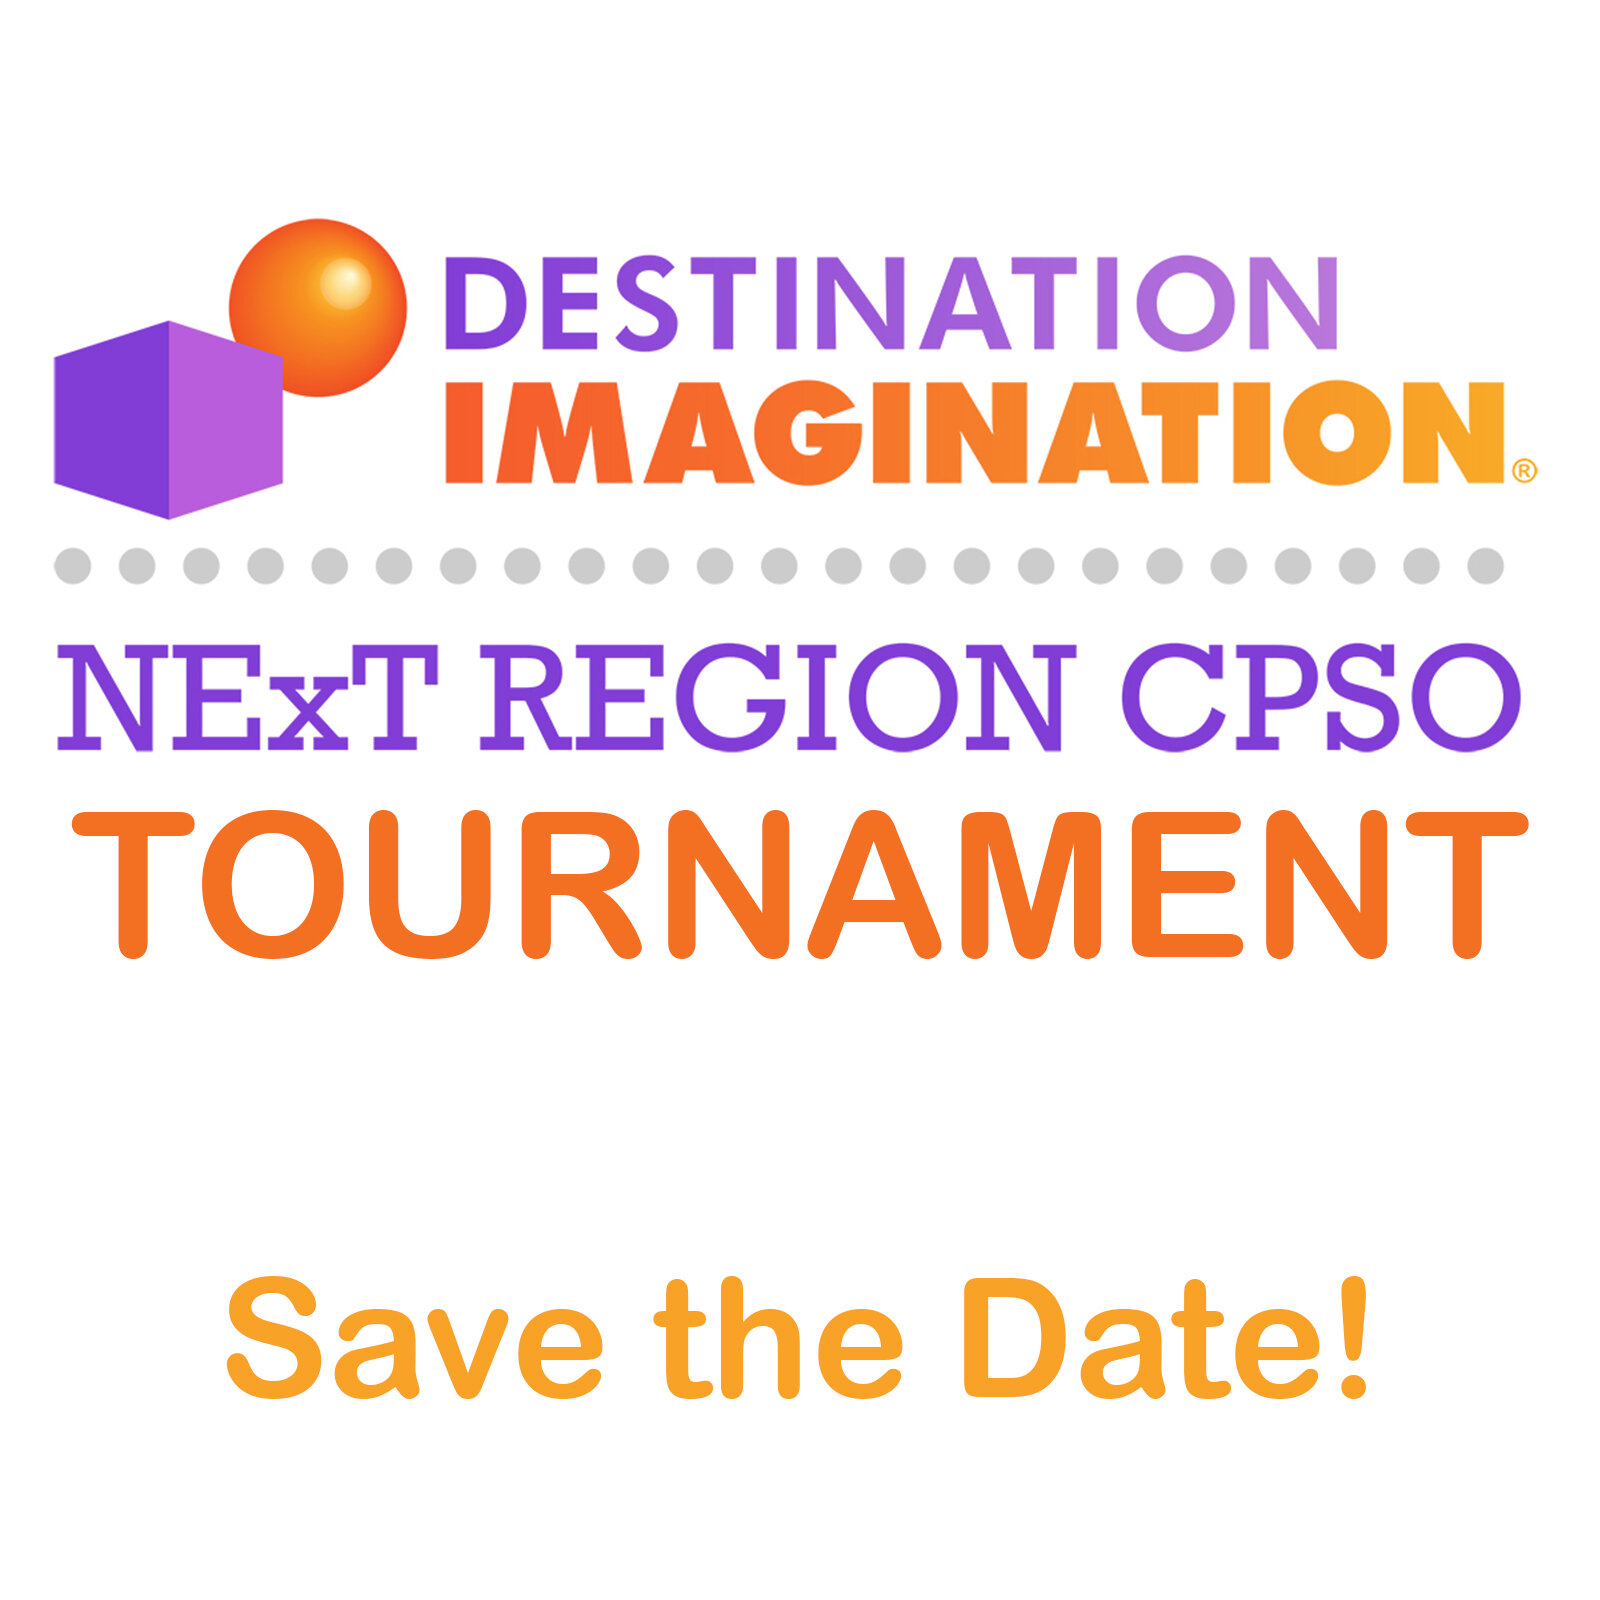 Tournament Save the Date.jpg